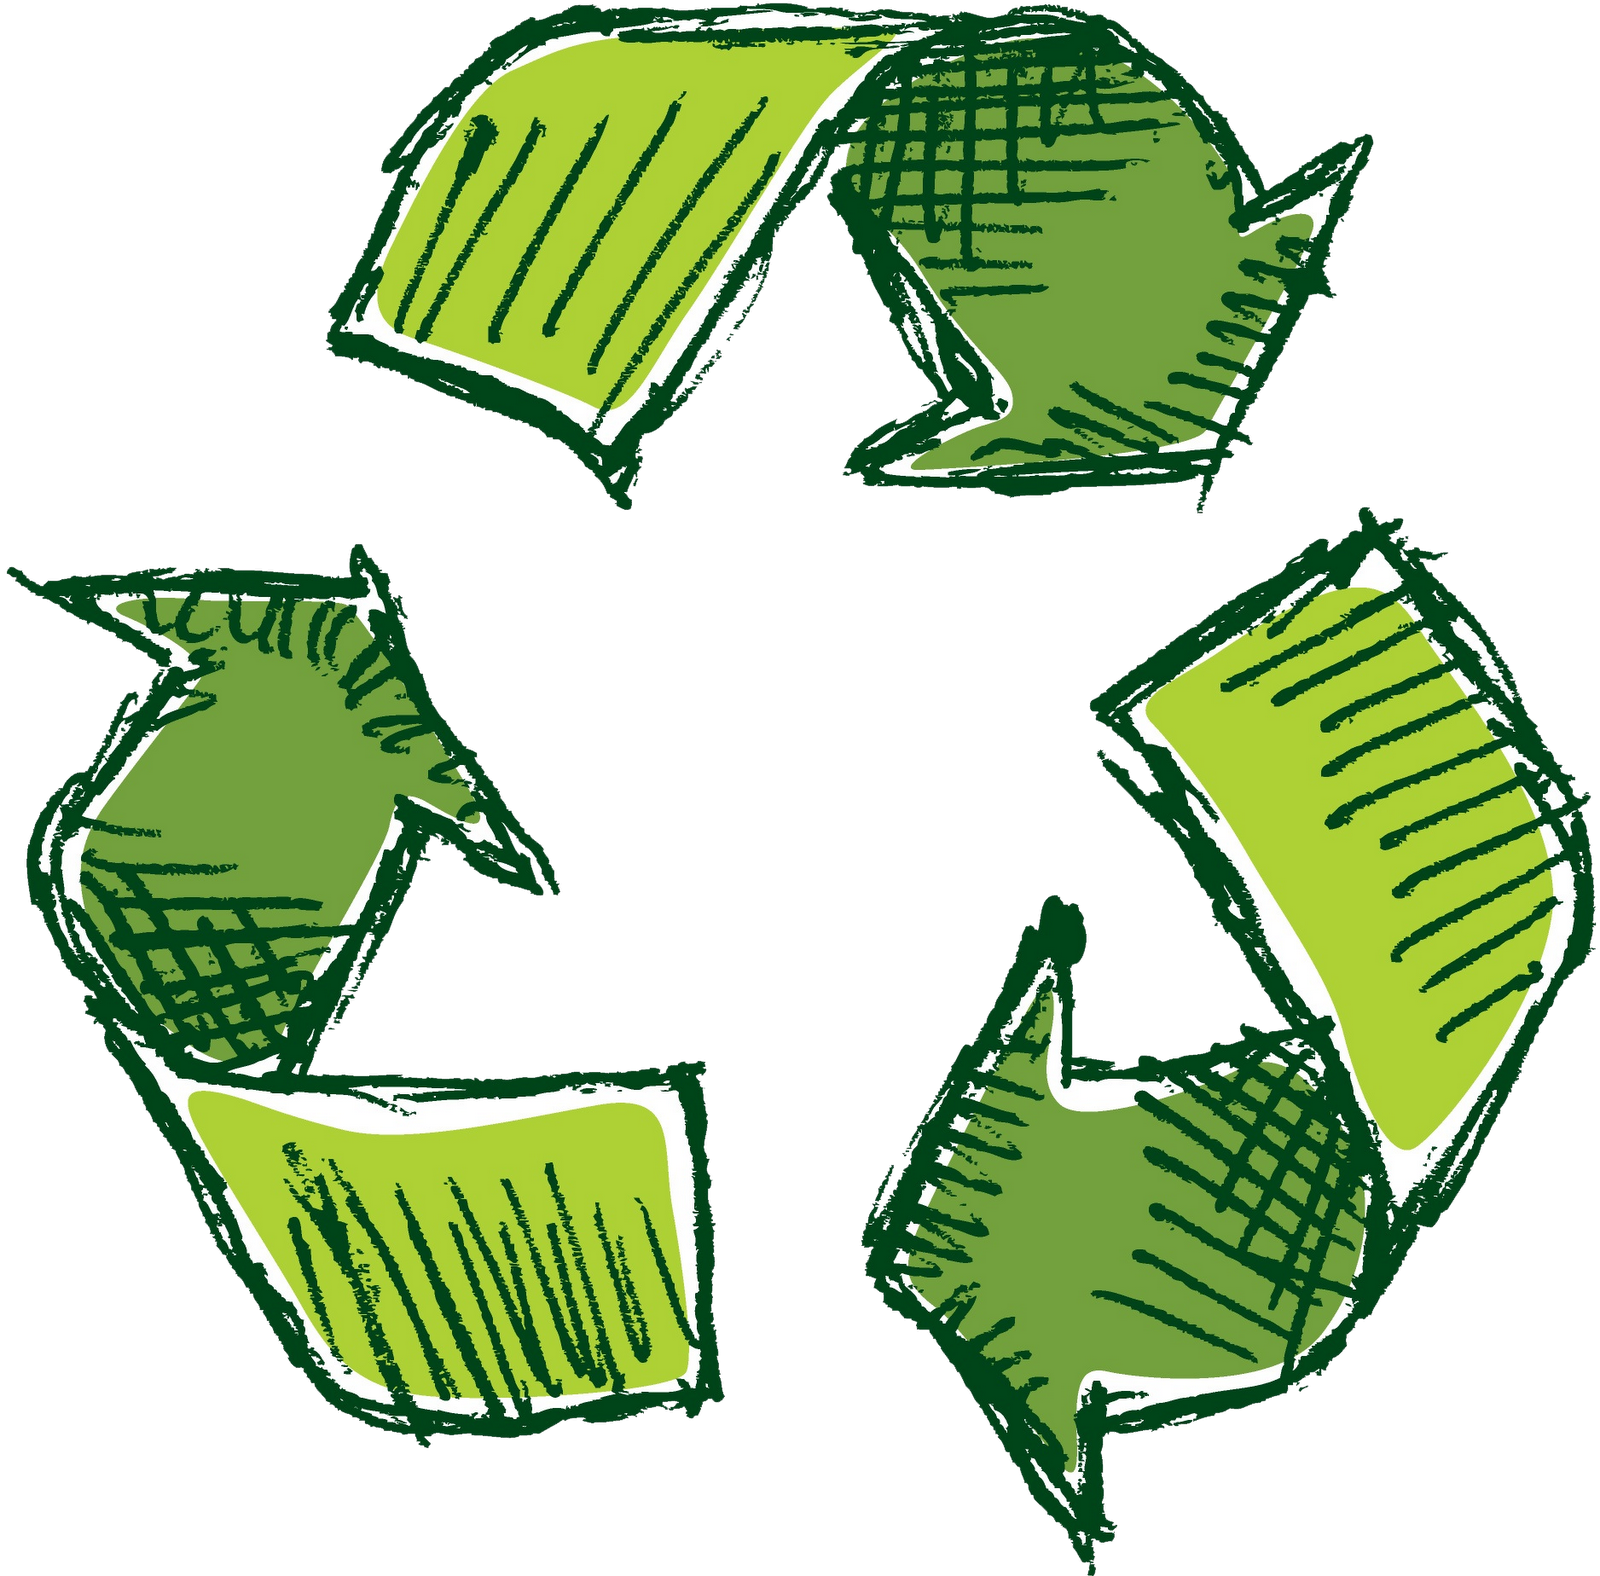 Recycle Free Download Png PNG Image - Recycle PNG